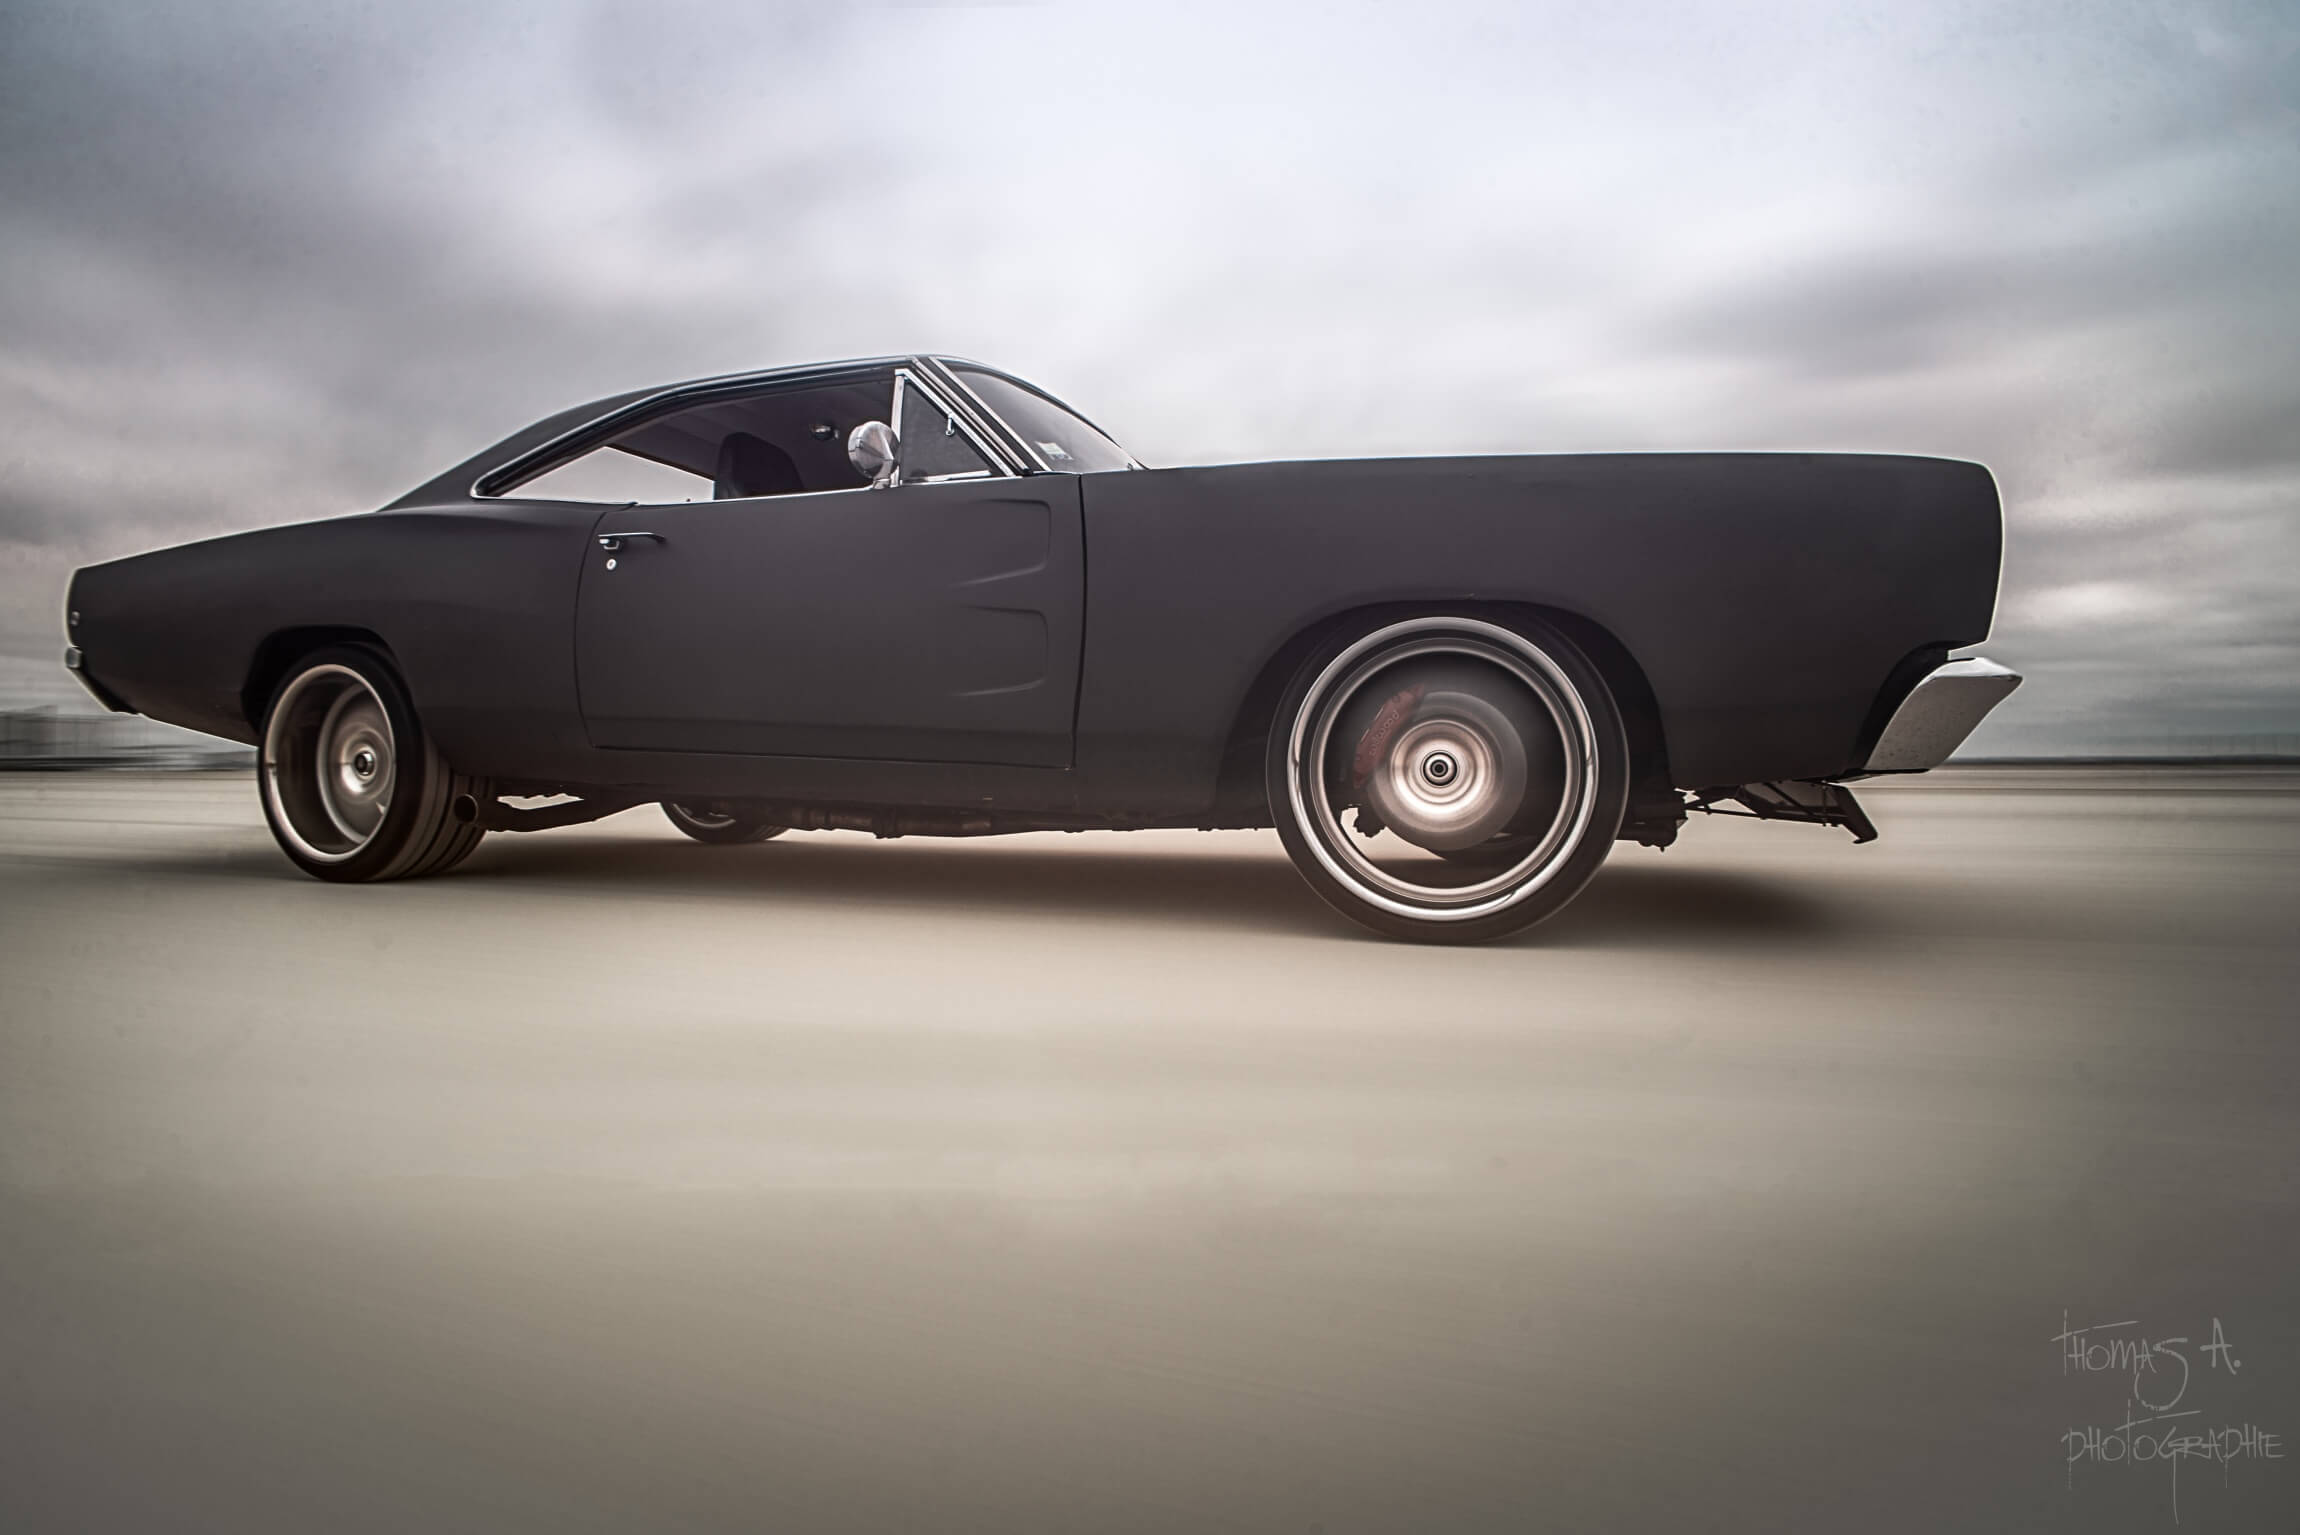 Shooting Dodge Coronet Charger Donges Rigshot